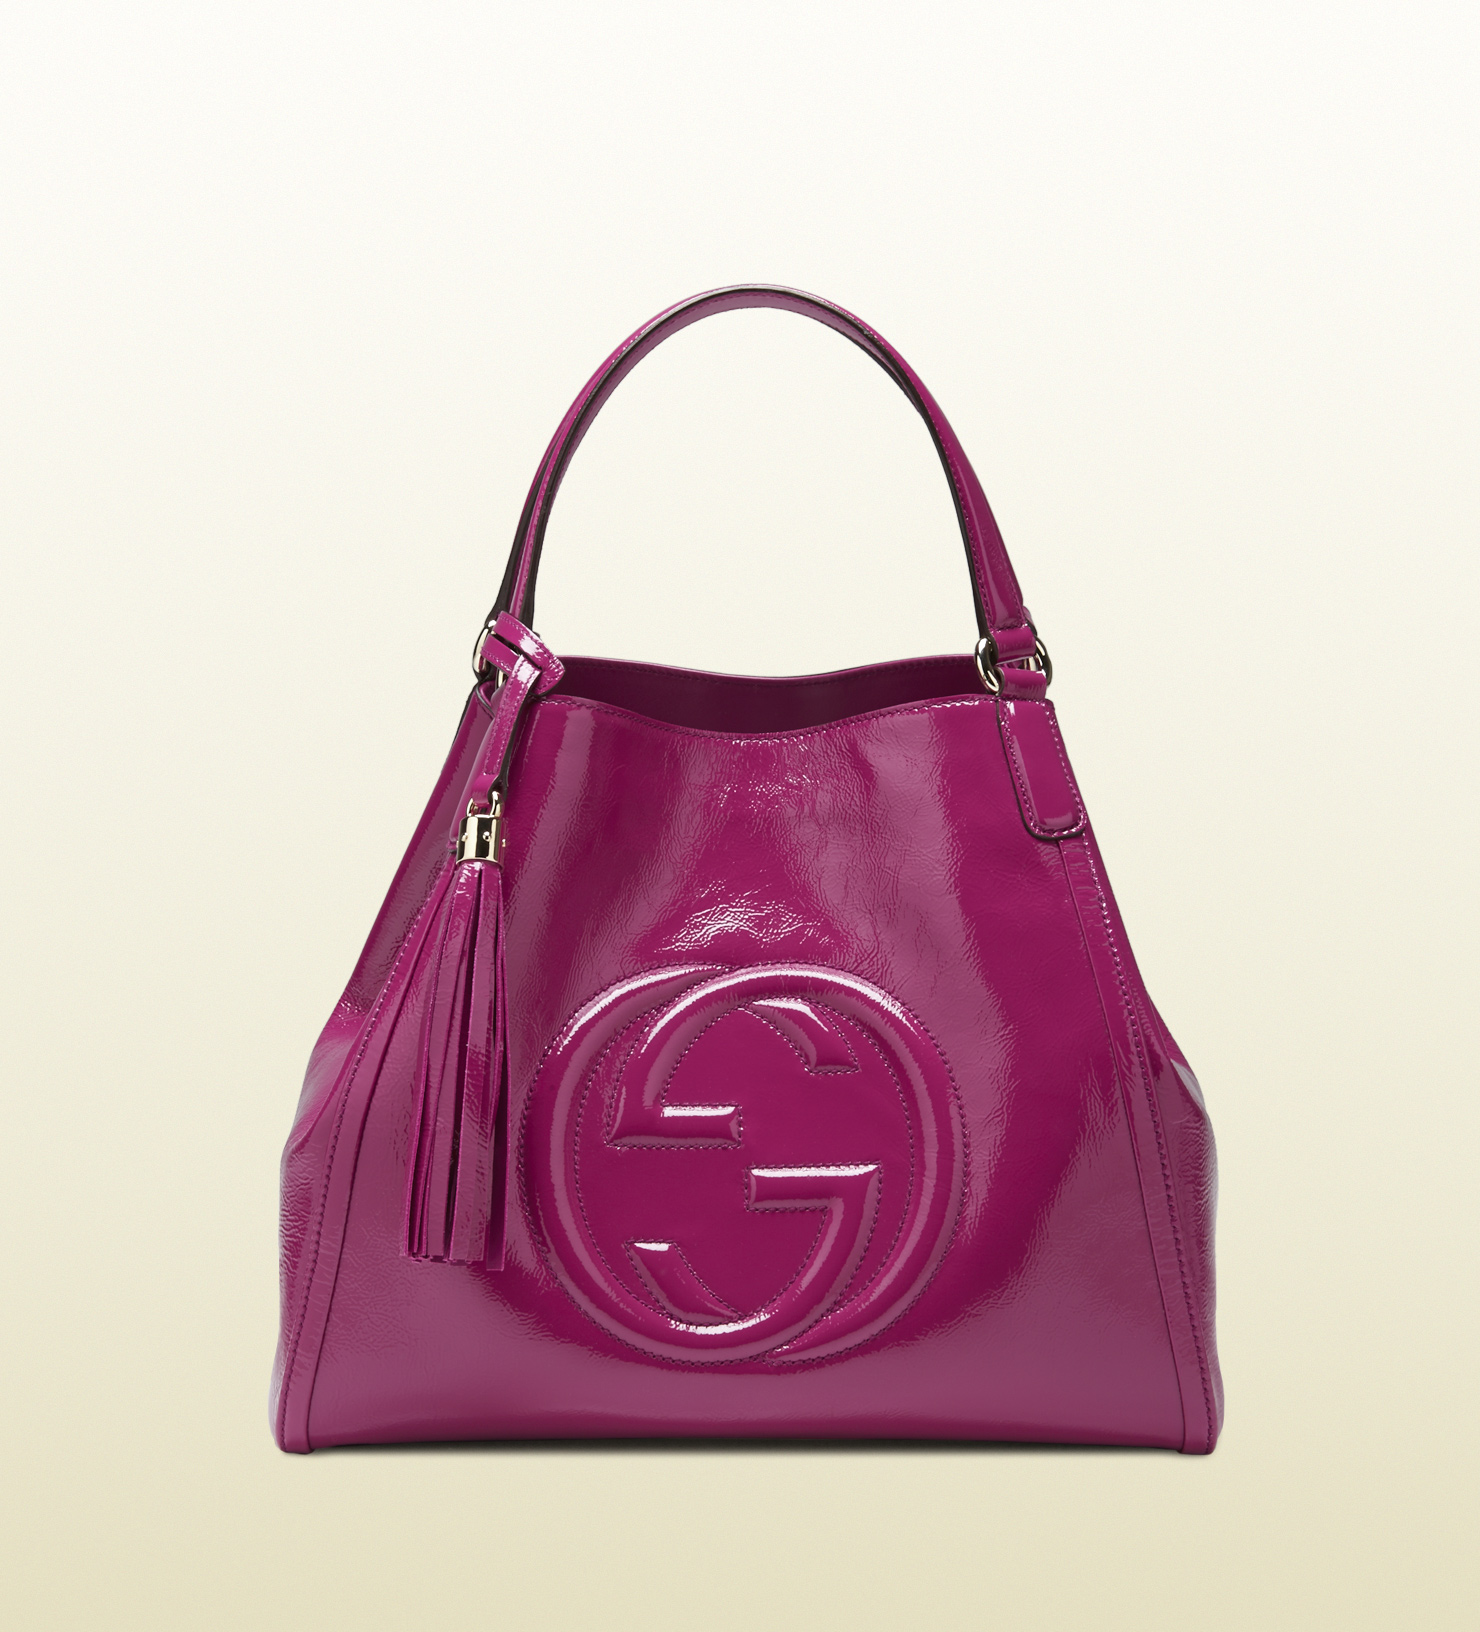 Gucci Soho Soft Patent Leather Shoulder Bag in Purple | Lyst